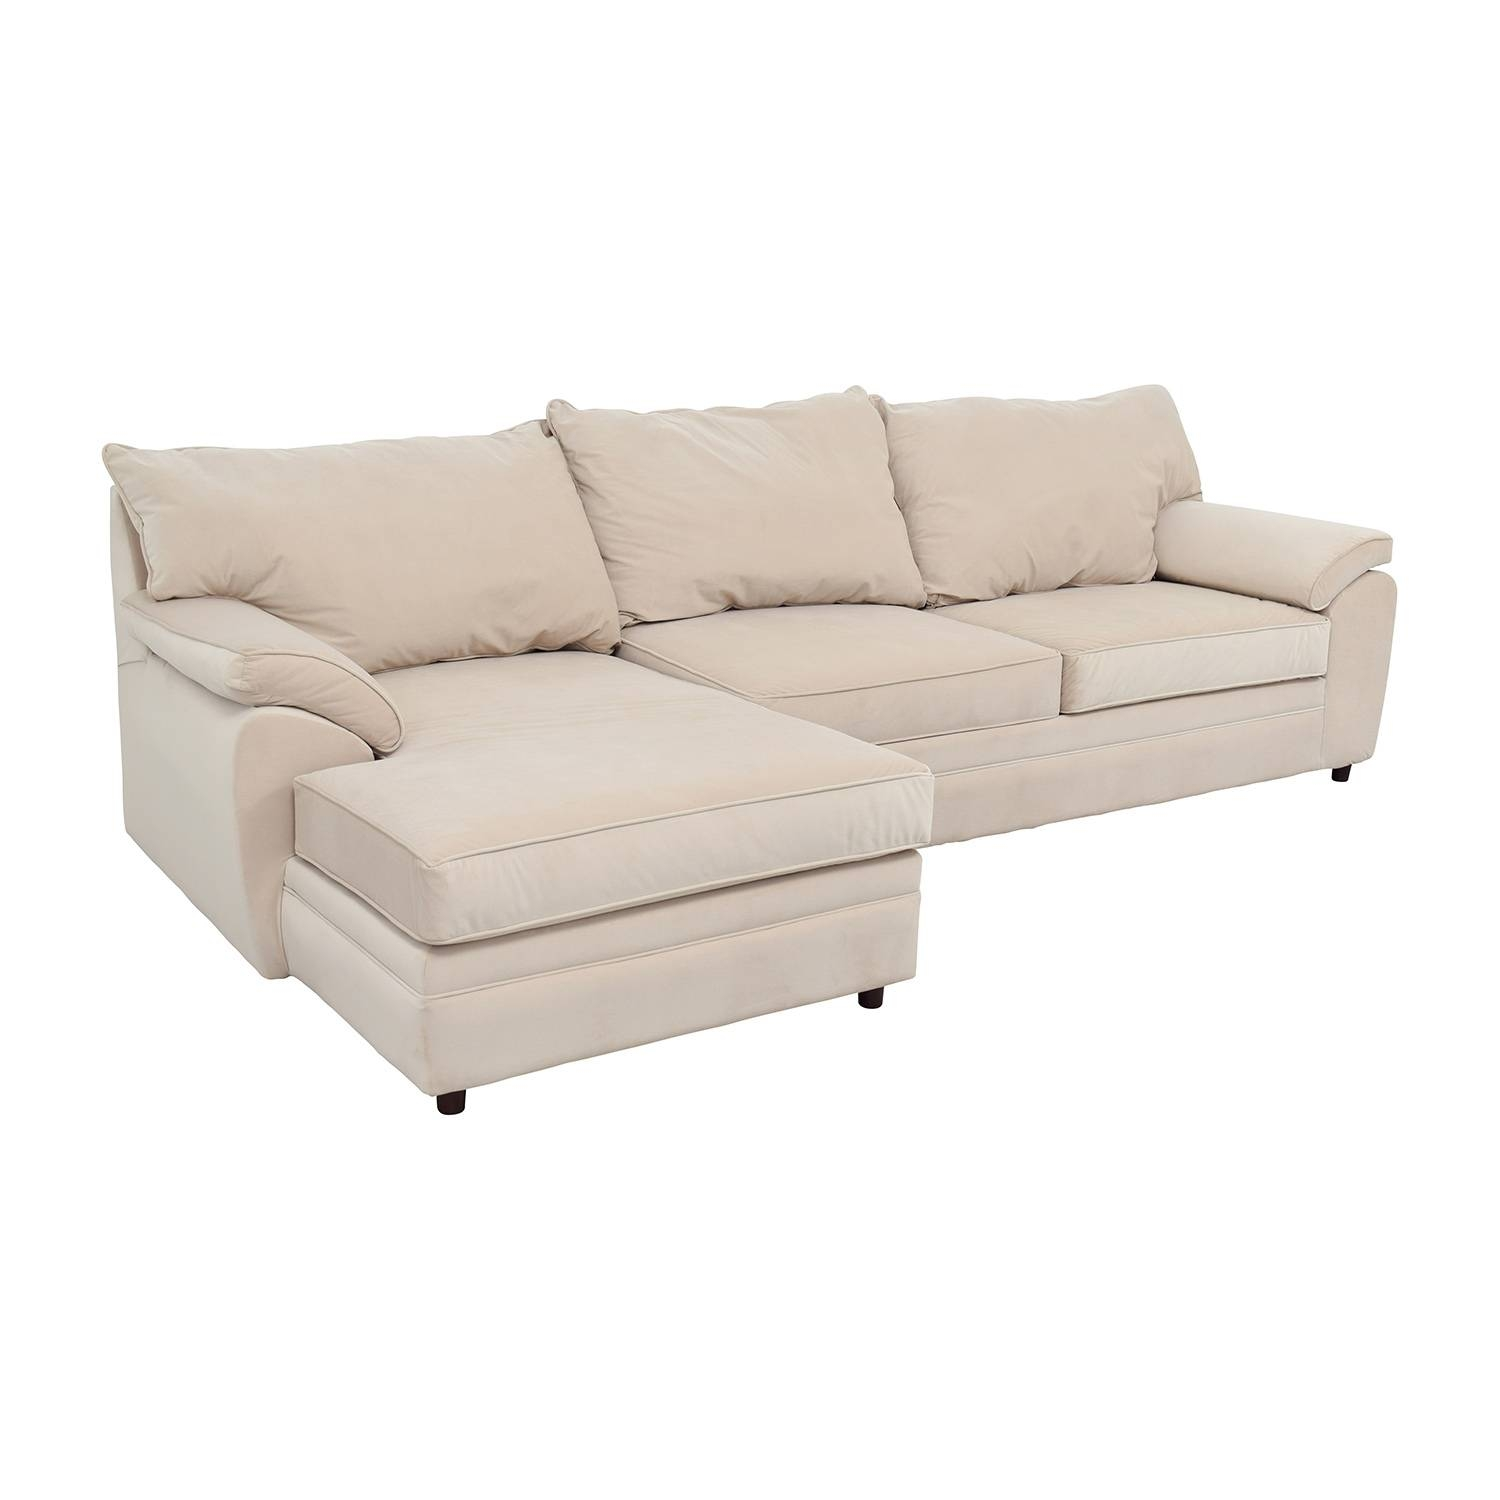 33% Off   Bob's Furniture Bob Furniture Off White Right Chaise Within Cindy Crawford Metropolis Sofas (Photo 13 of 15)